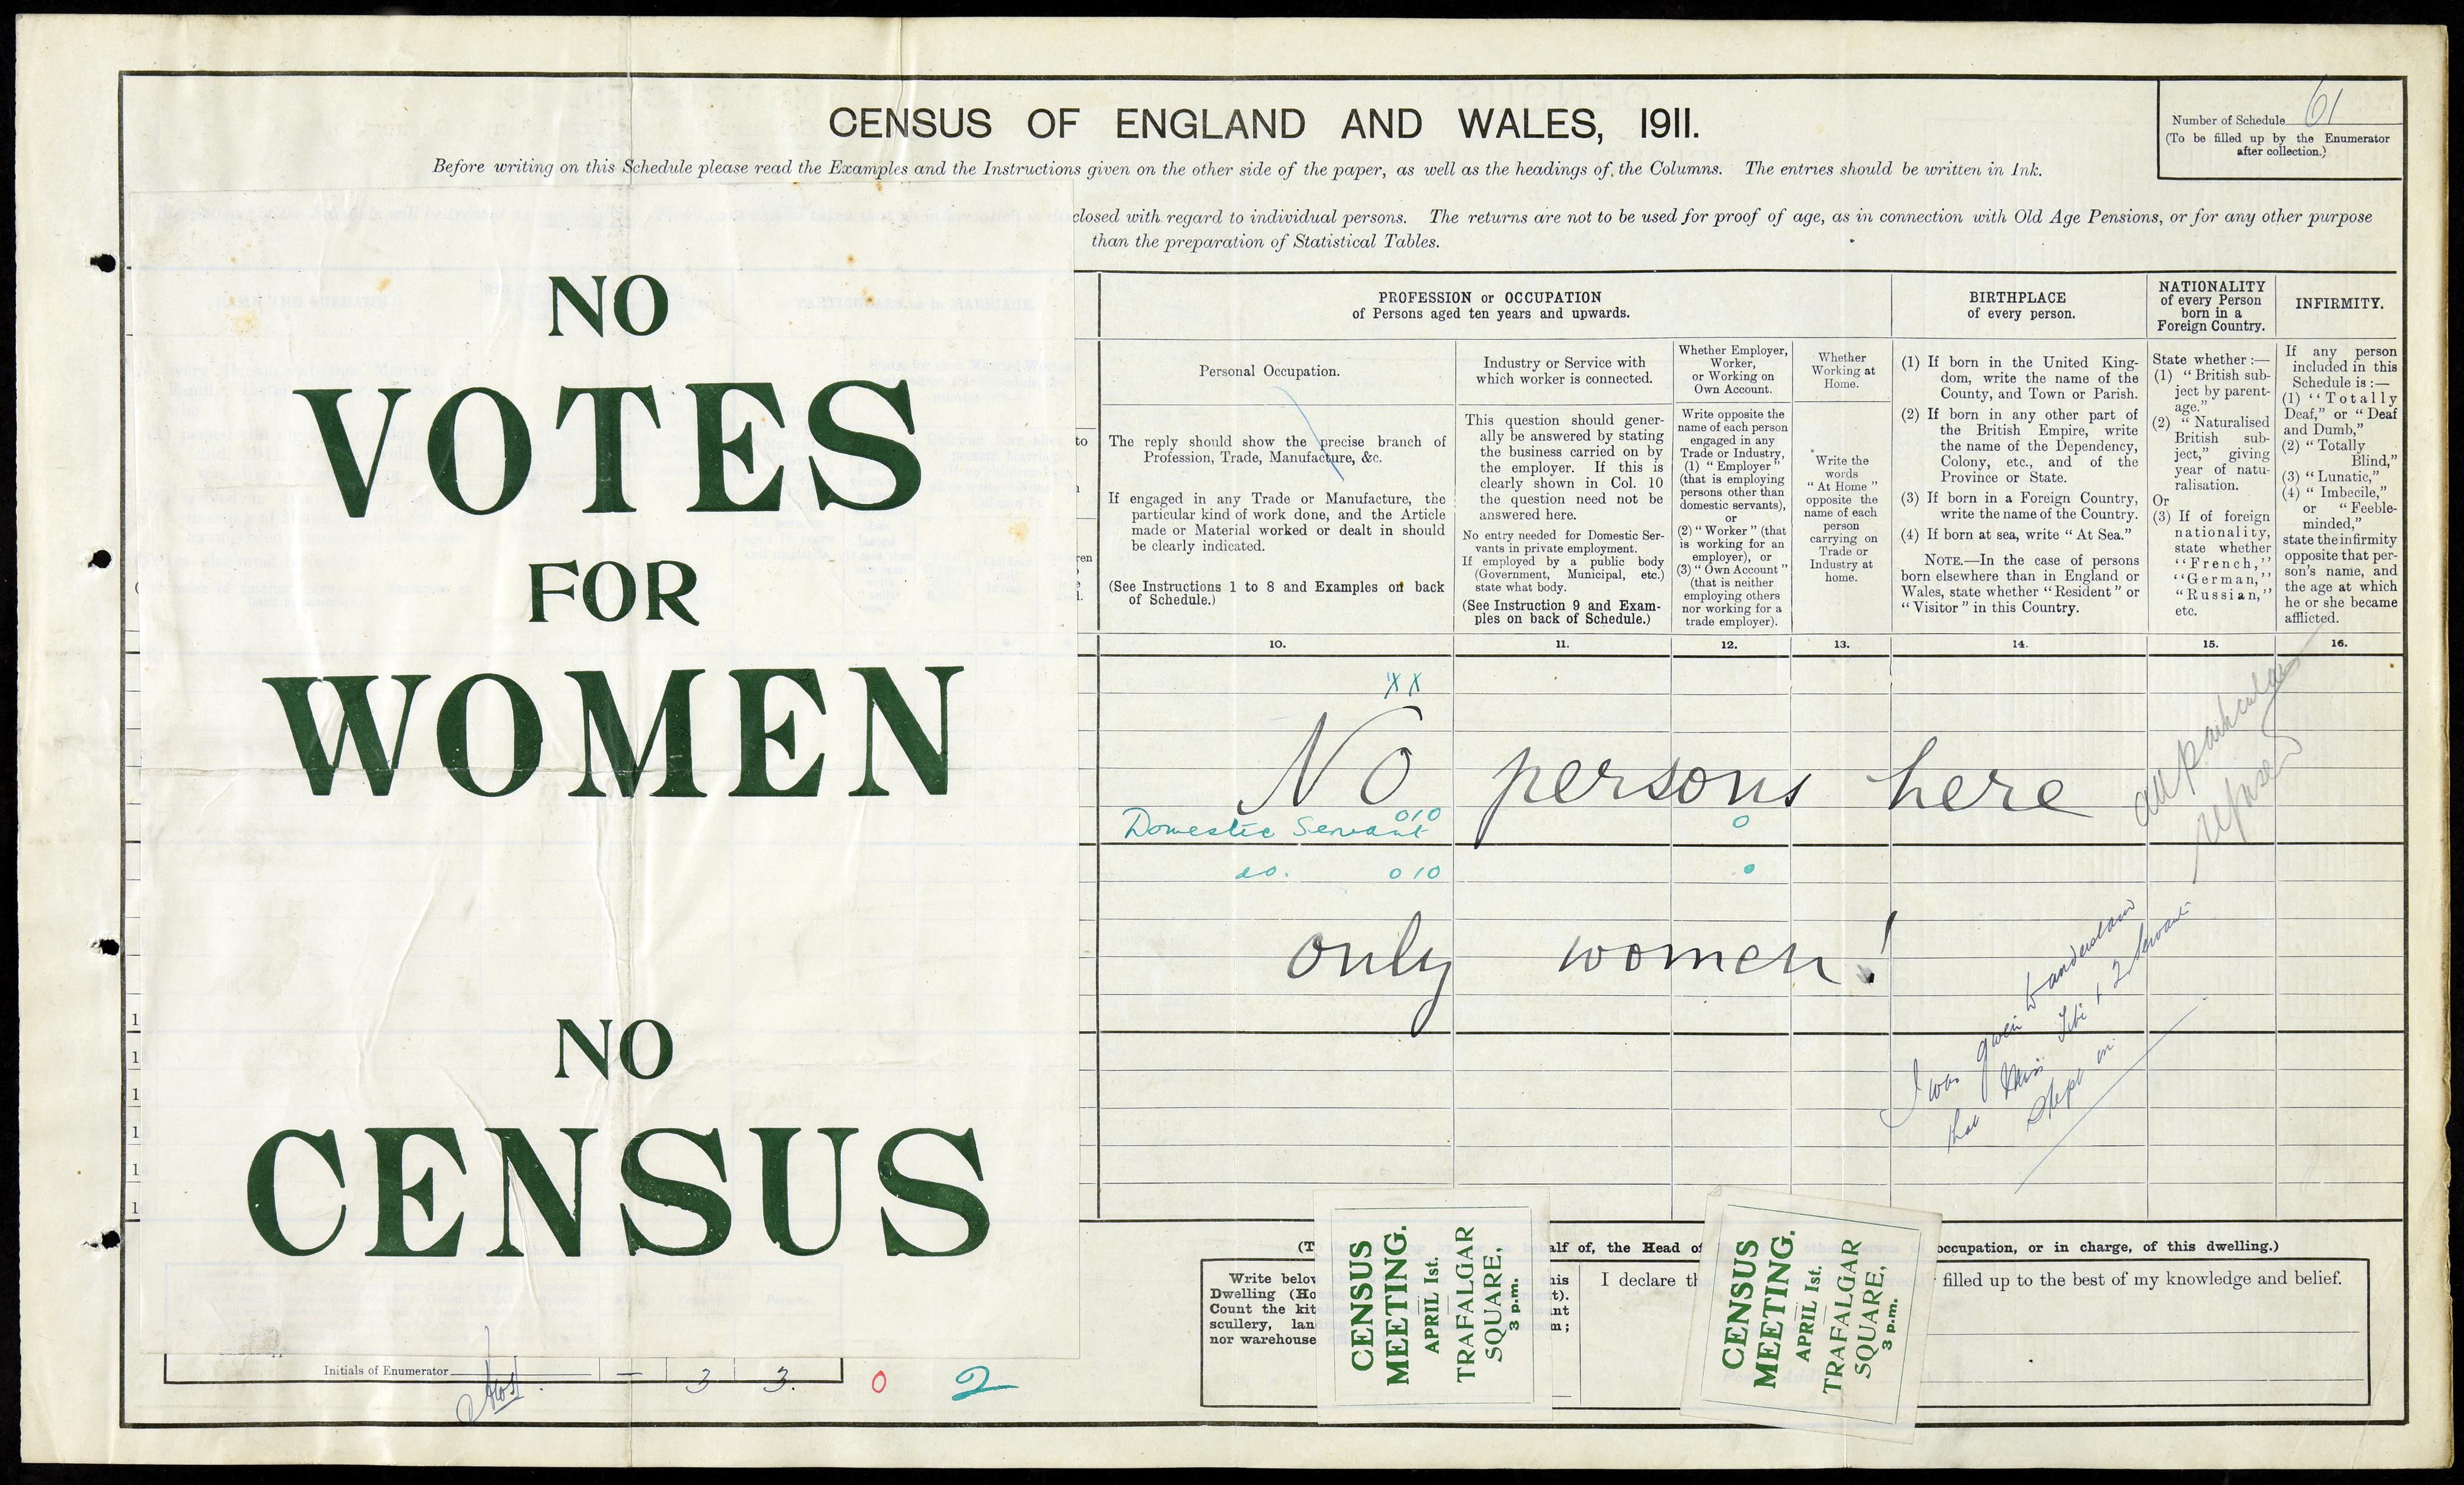 Suffragette protest in the South Kensington Census, London 1911 RG14/118